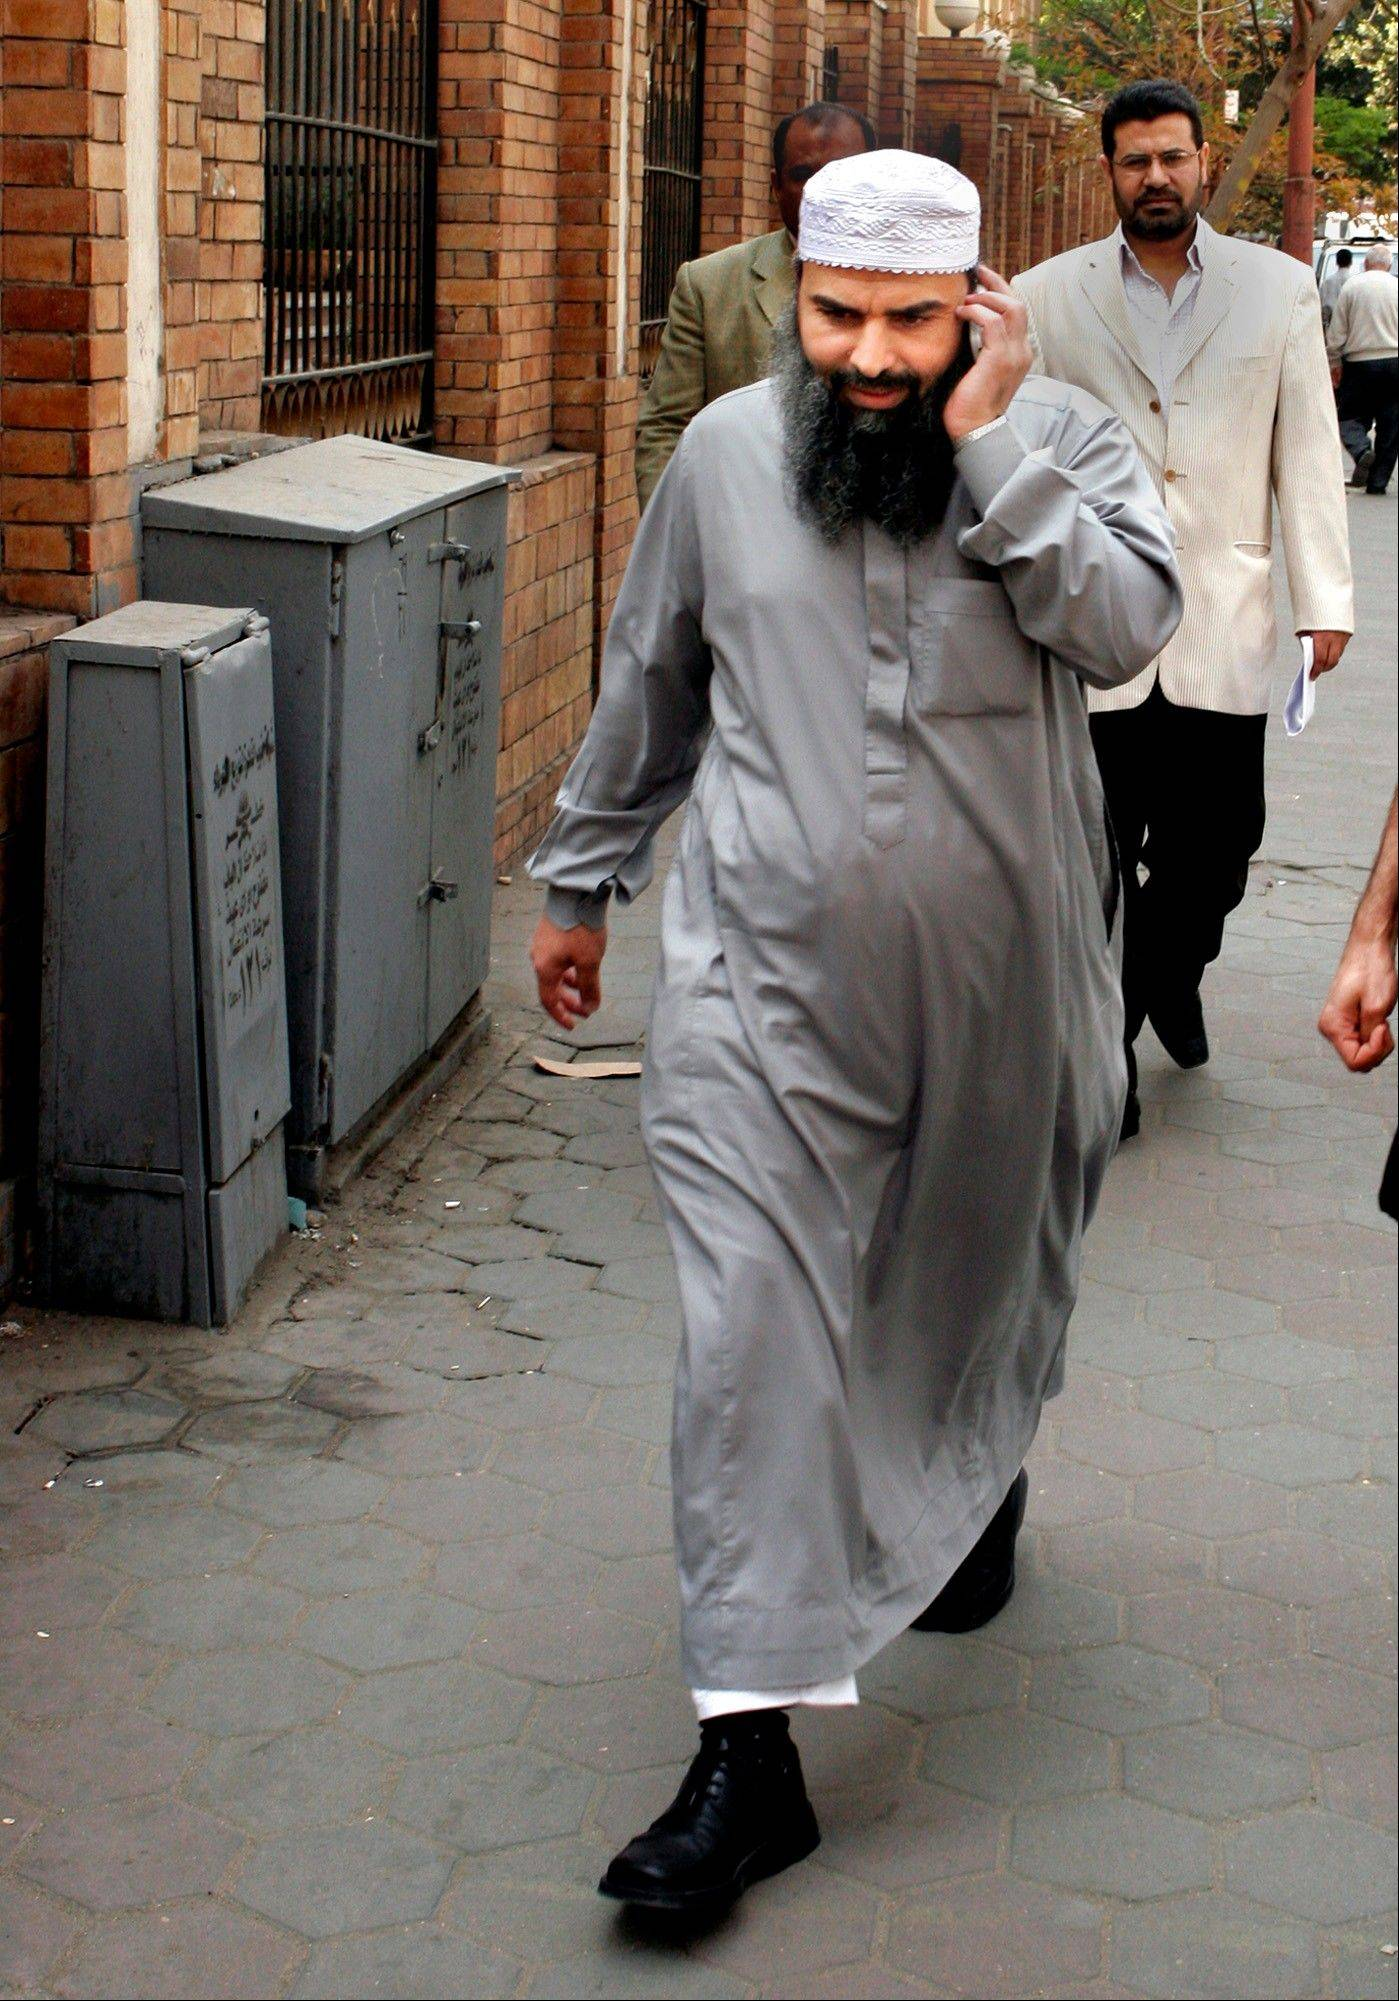 Egyptian cleric Osama Hassan Mustafa Nasr, known as Abu Omar, who was allegedly kidnapped by CIA agents off the streets of an Italian city and taken to Egypt where he said he was tortured, talks on his mobile as he walks at a Cairo street after attending Amnesty International press conference in Cairo, Egypt.